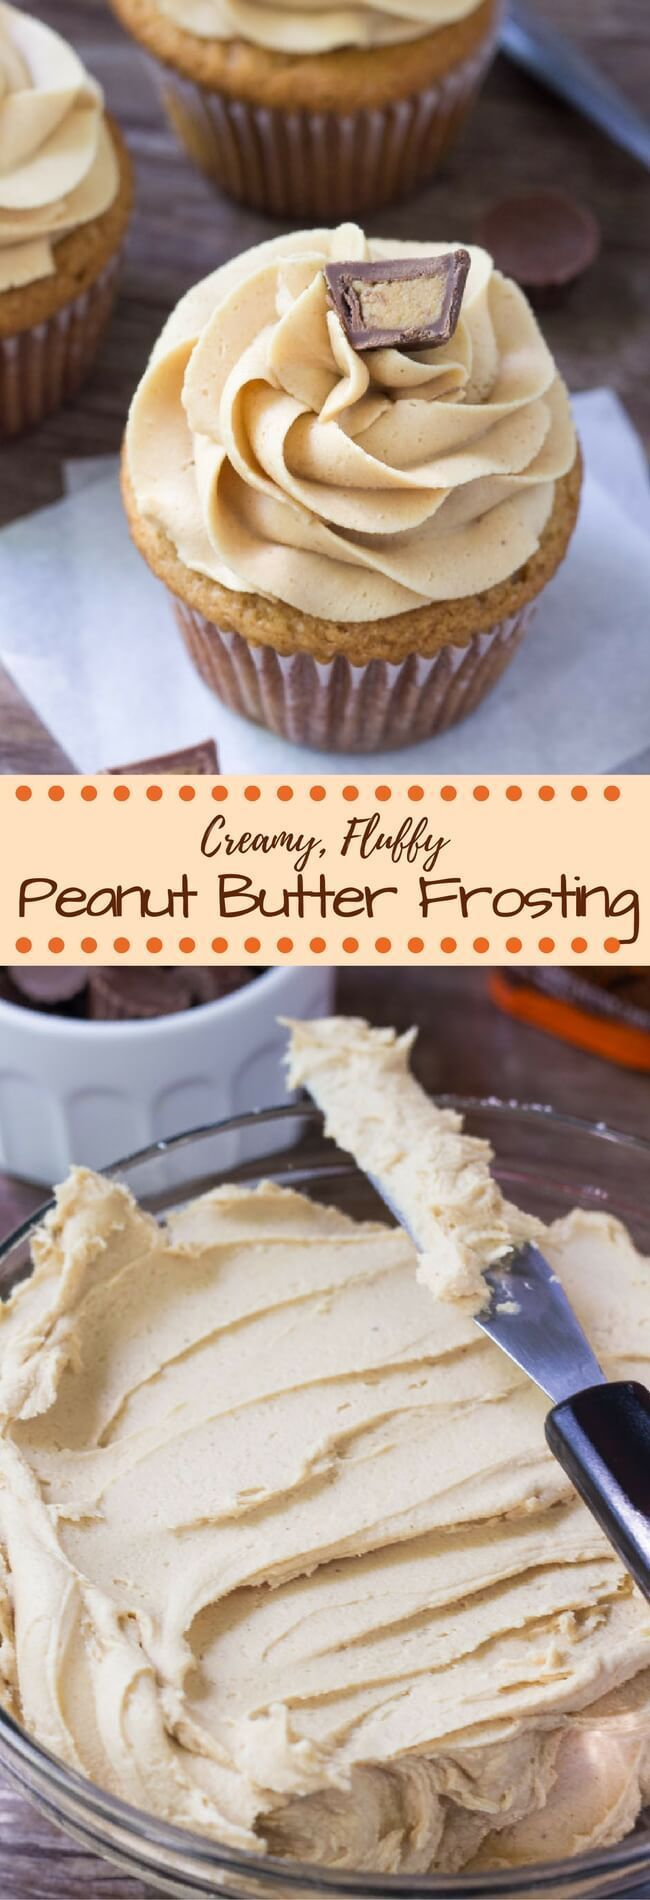 Fluffy, creamy peanut butter buttercream. This easy frosting recipe is perfect for cupcakes, brownies, birthday cake or anything that goes with peanut butter! #birthdaycakes